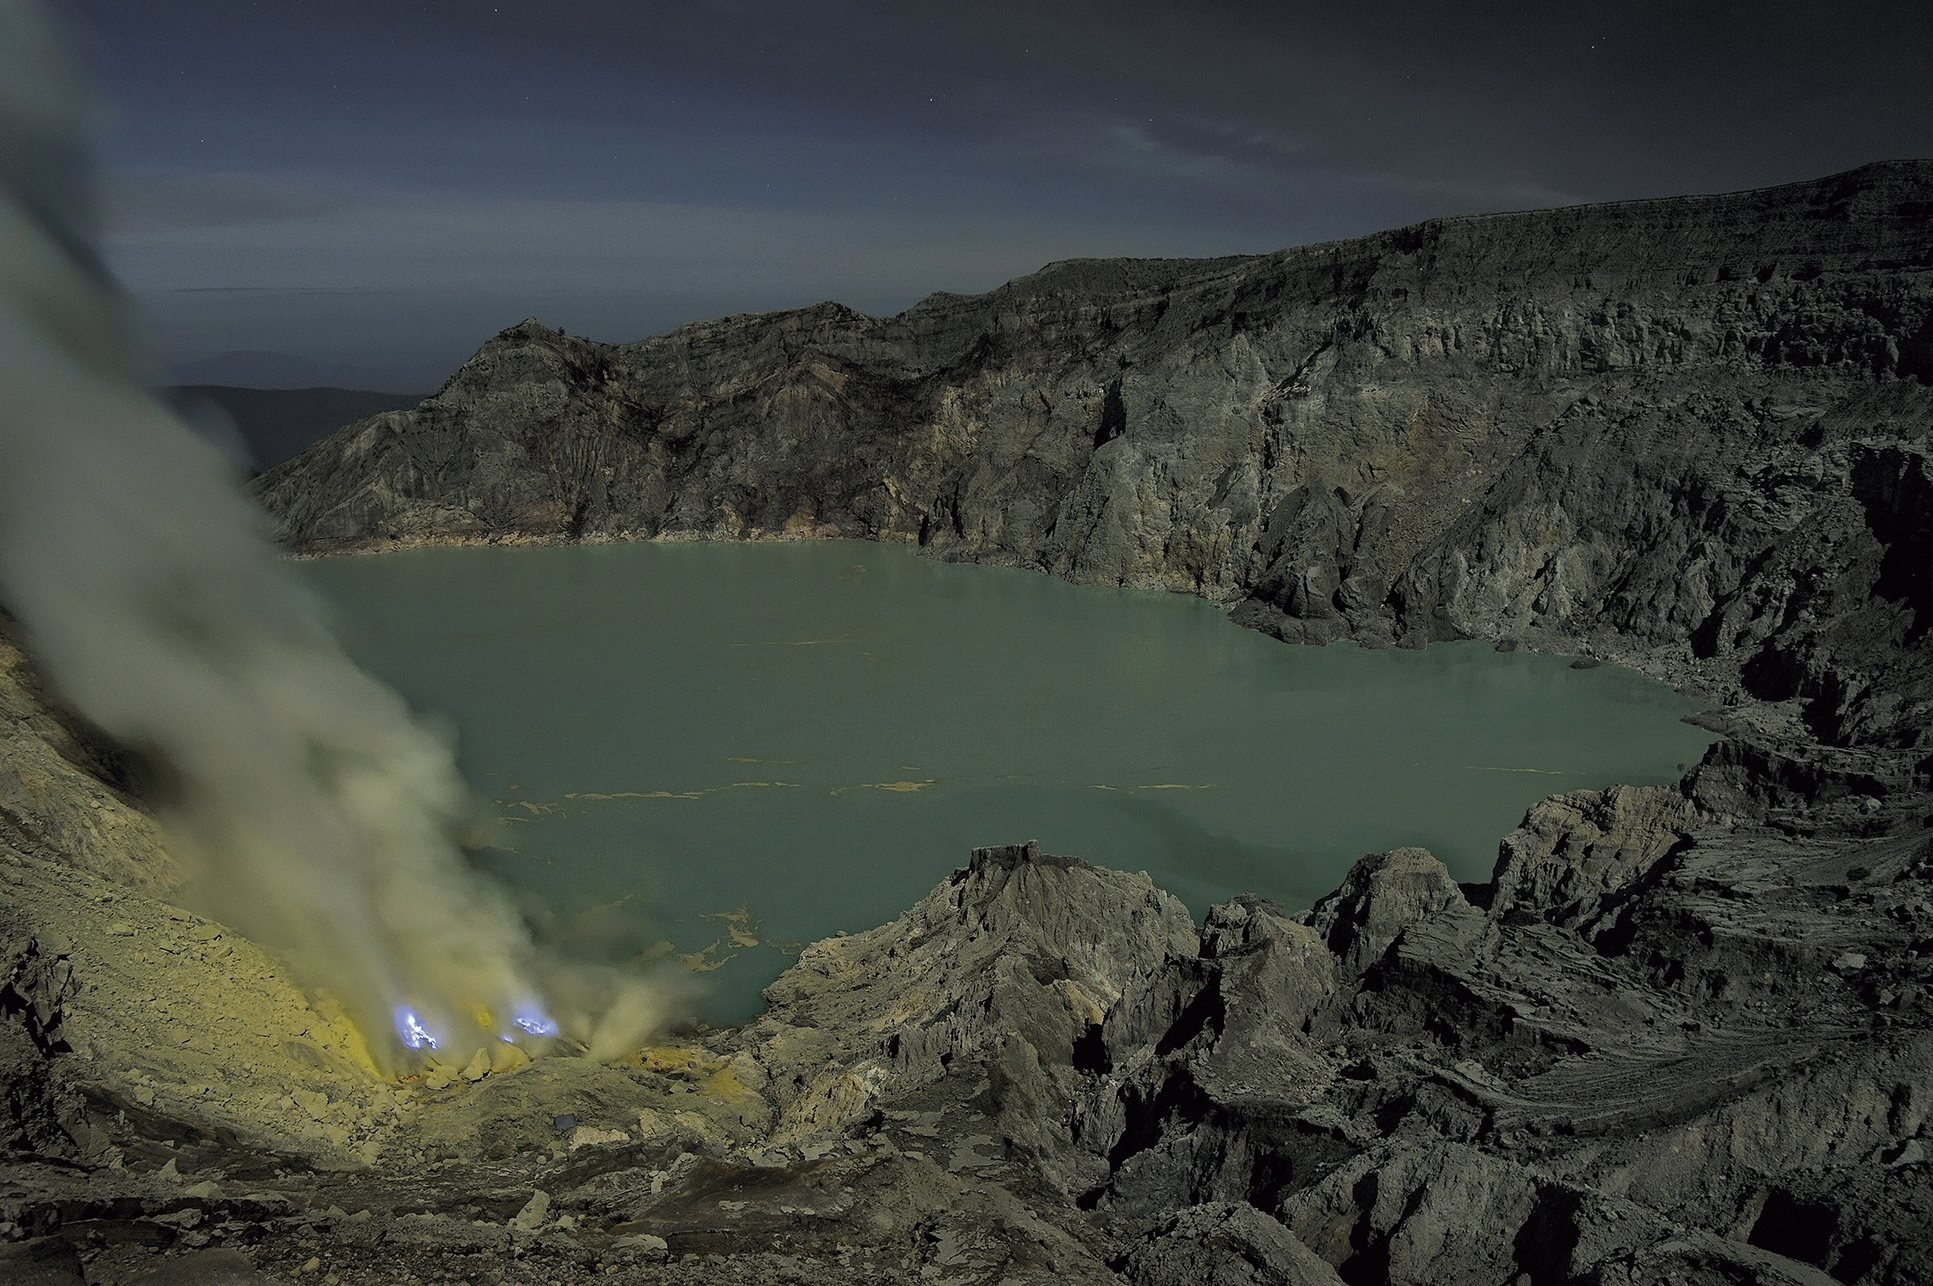 The Kawah Ijen is part of a group of active stratovolcanoes located in the province of East Java.